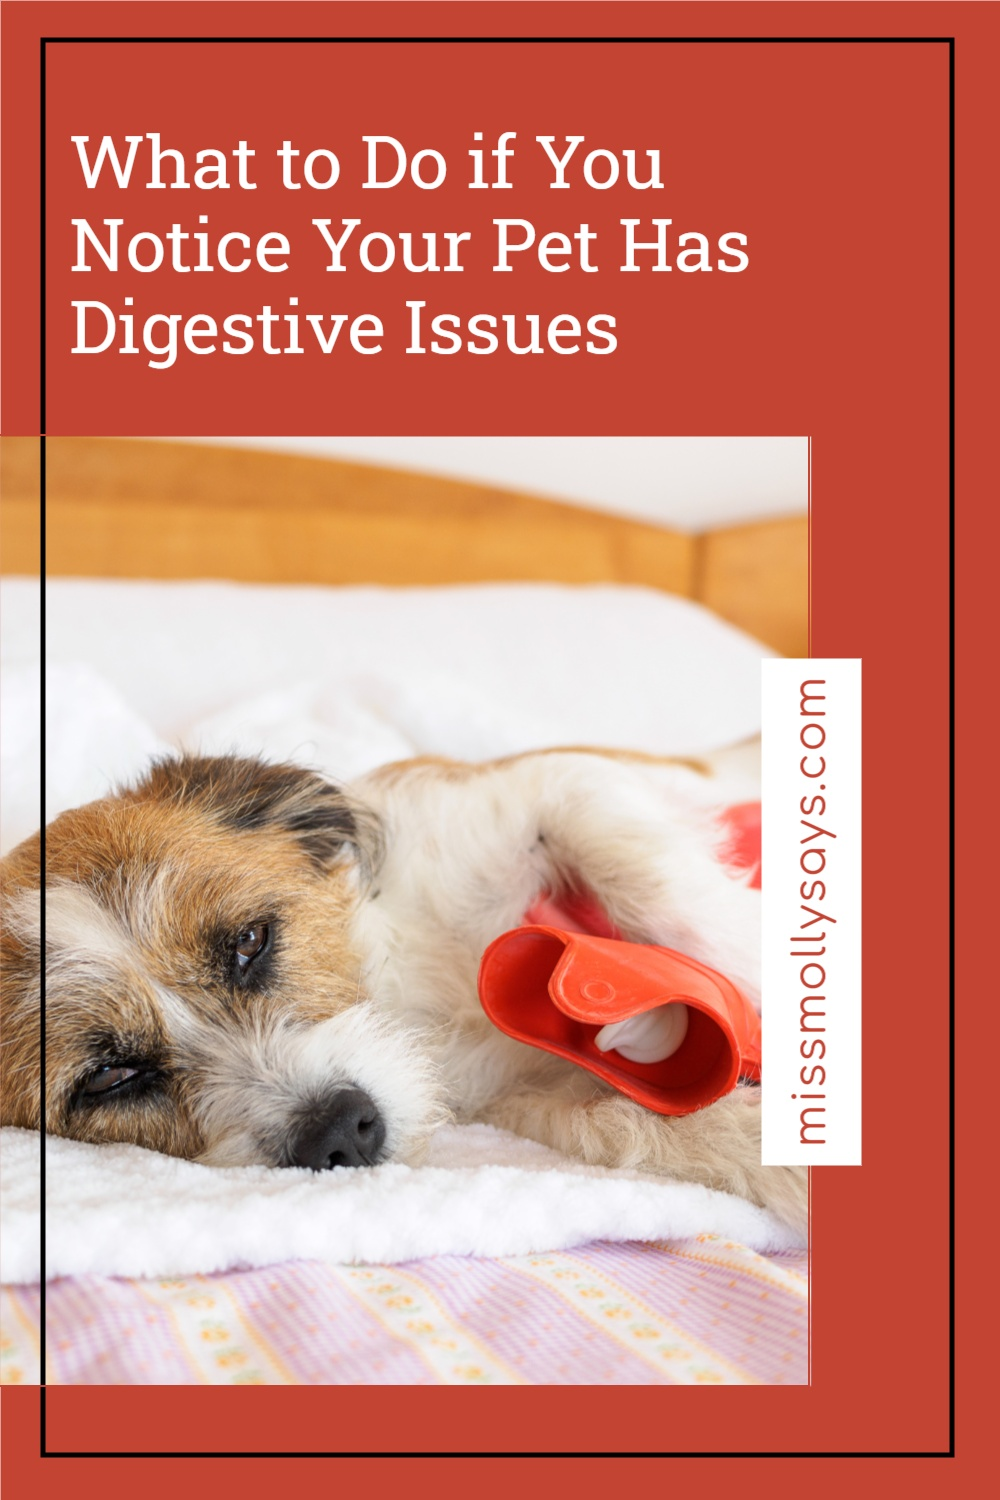 What to Do if You Notice Your Pet Has Digestive Issues